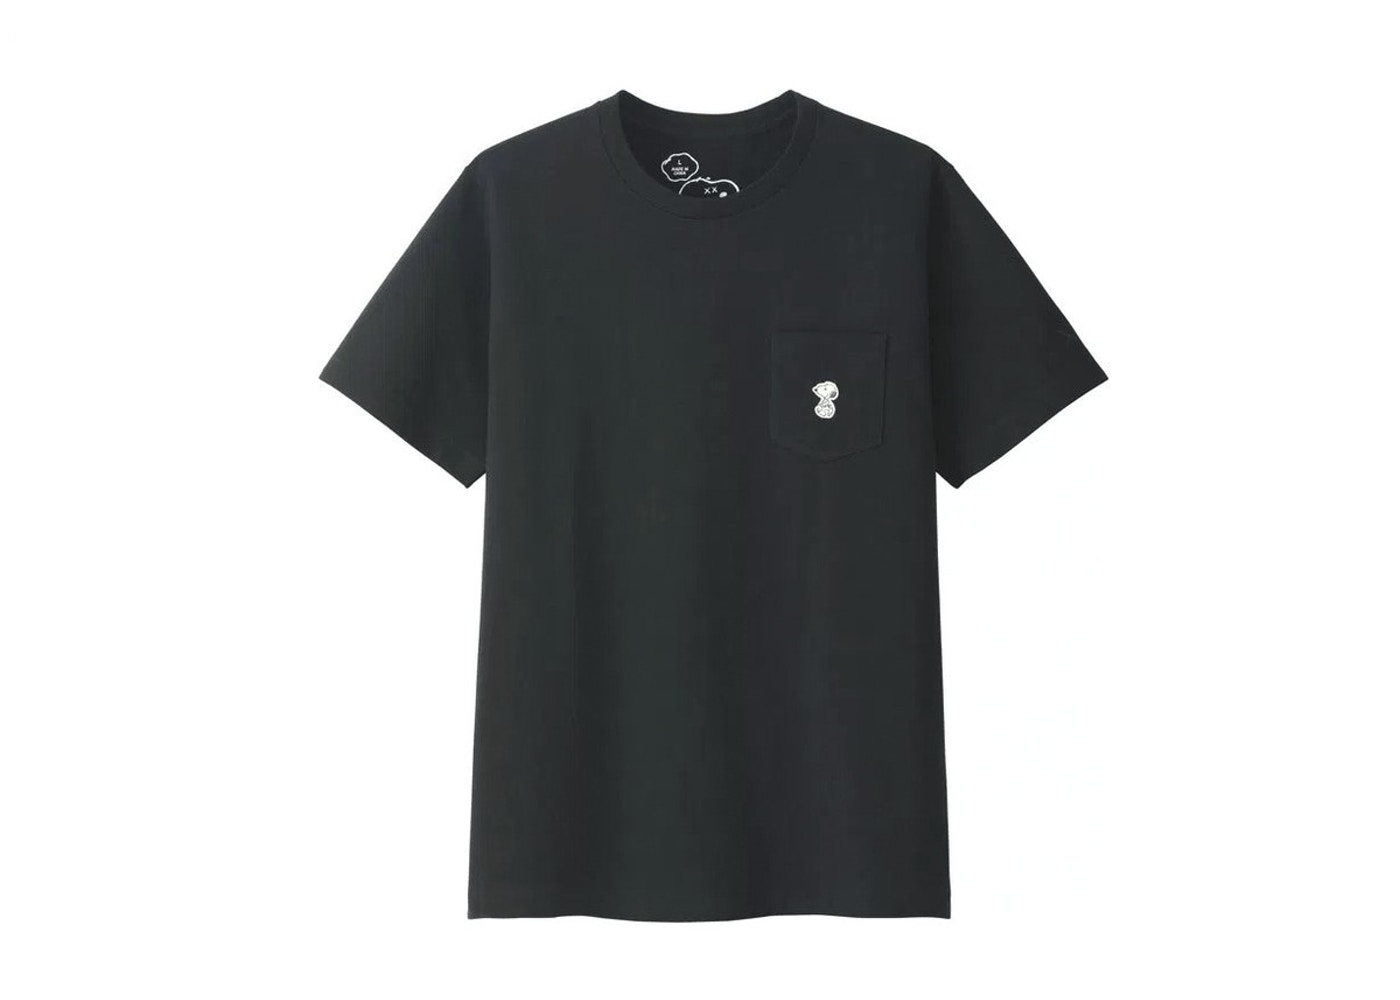 bf10a946 KAWS x Uniqlo x Peanuts Snoopy Pocket Tee (US Sizing) Black - SS17